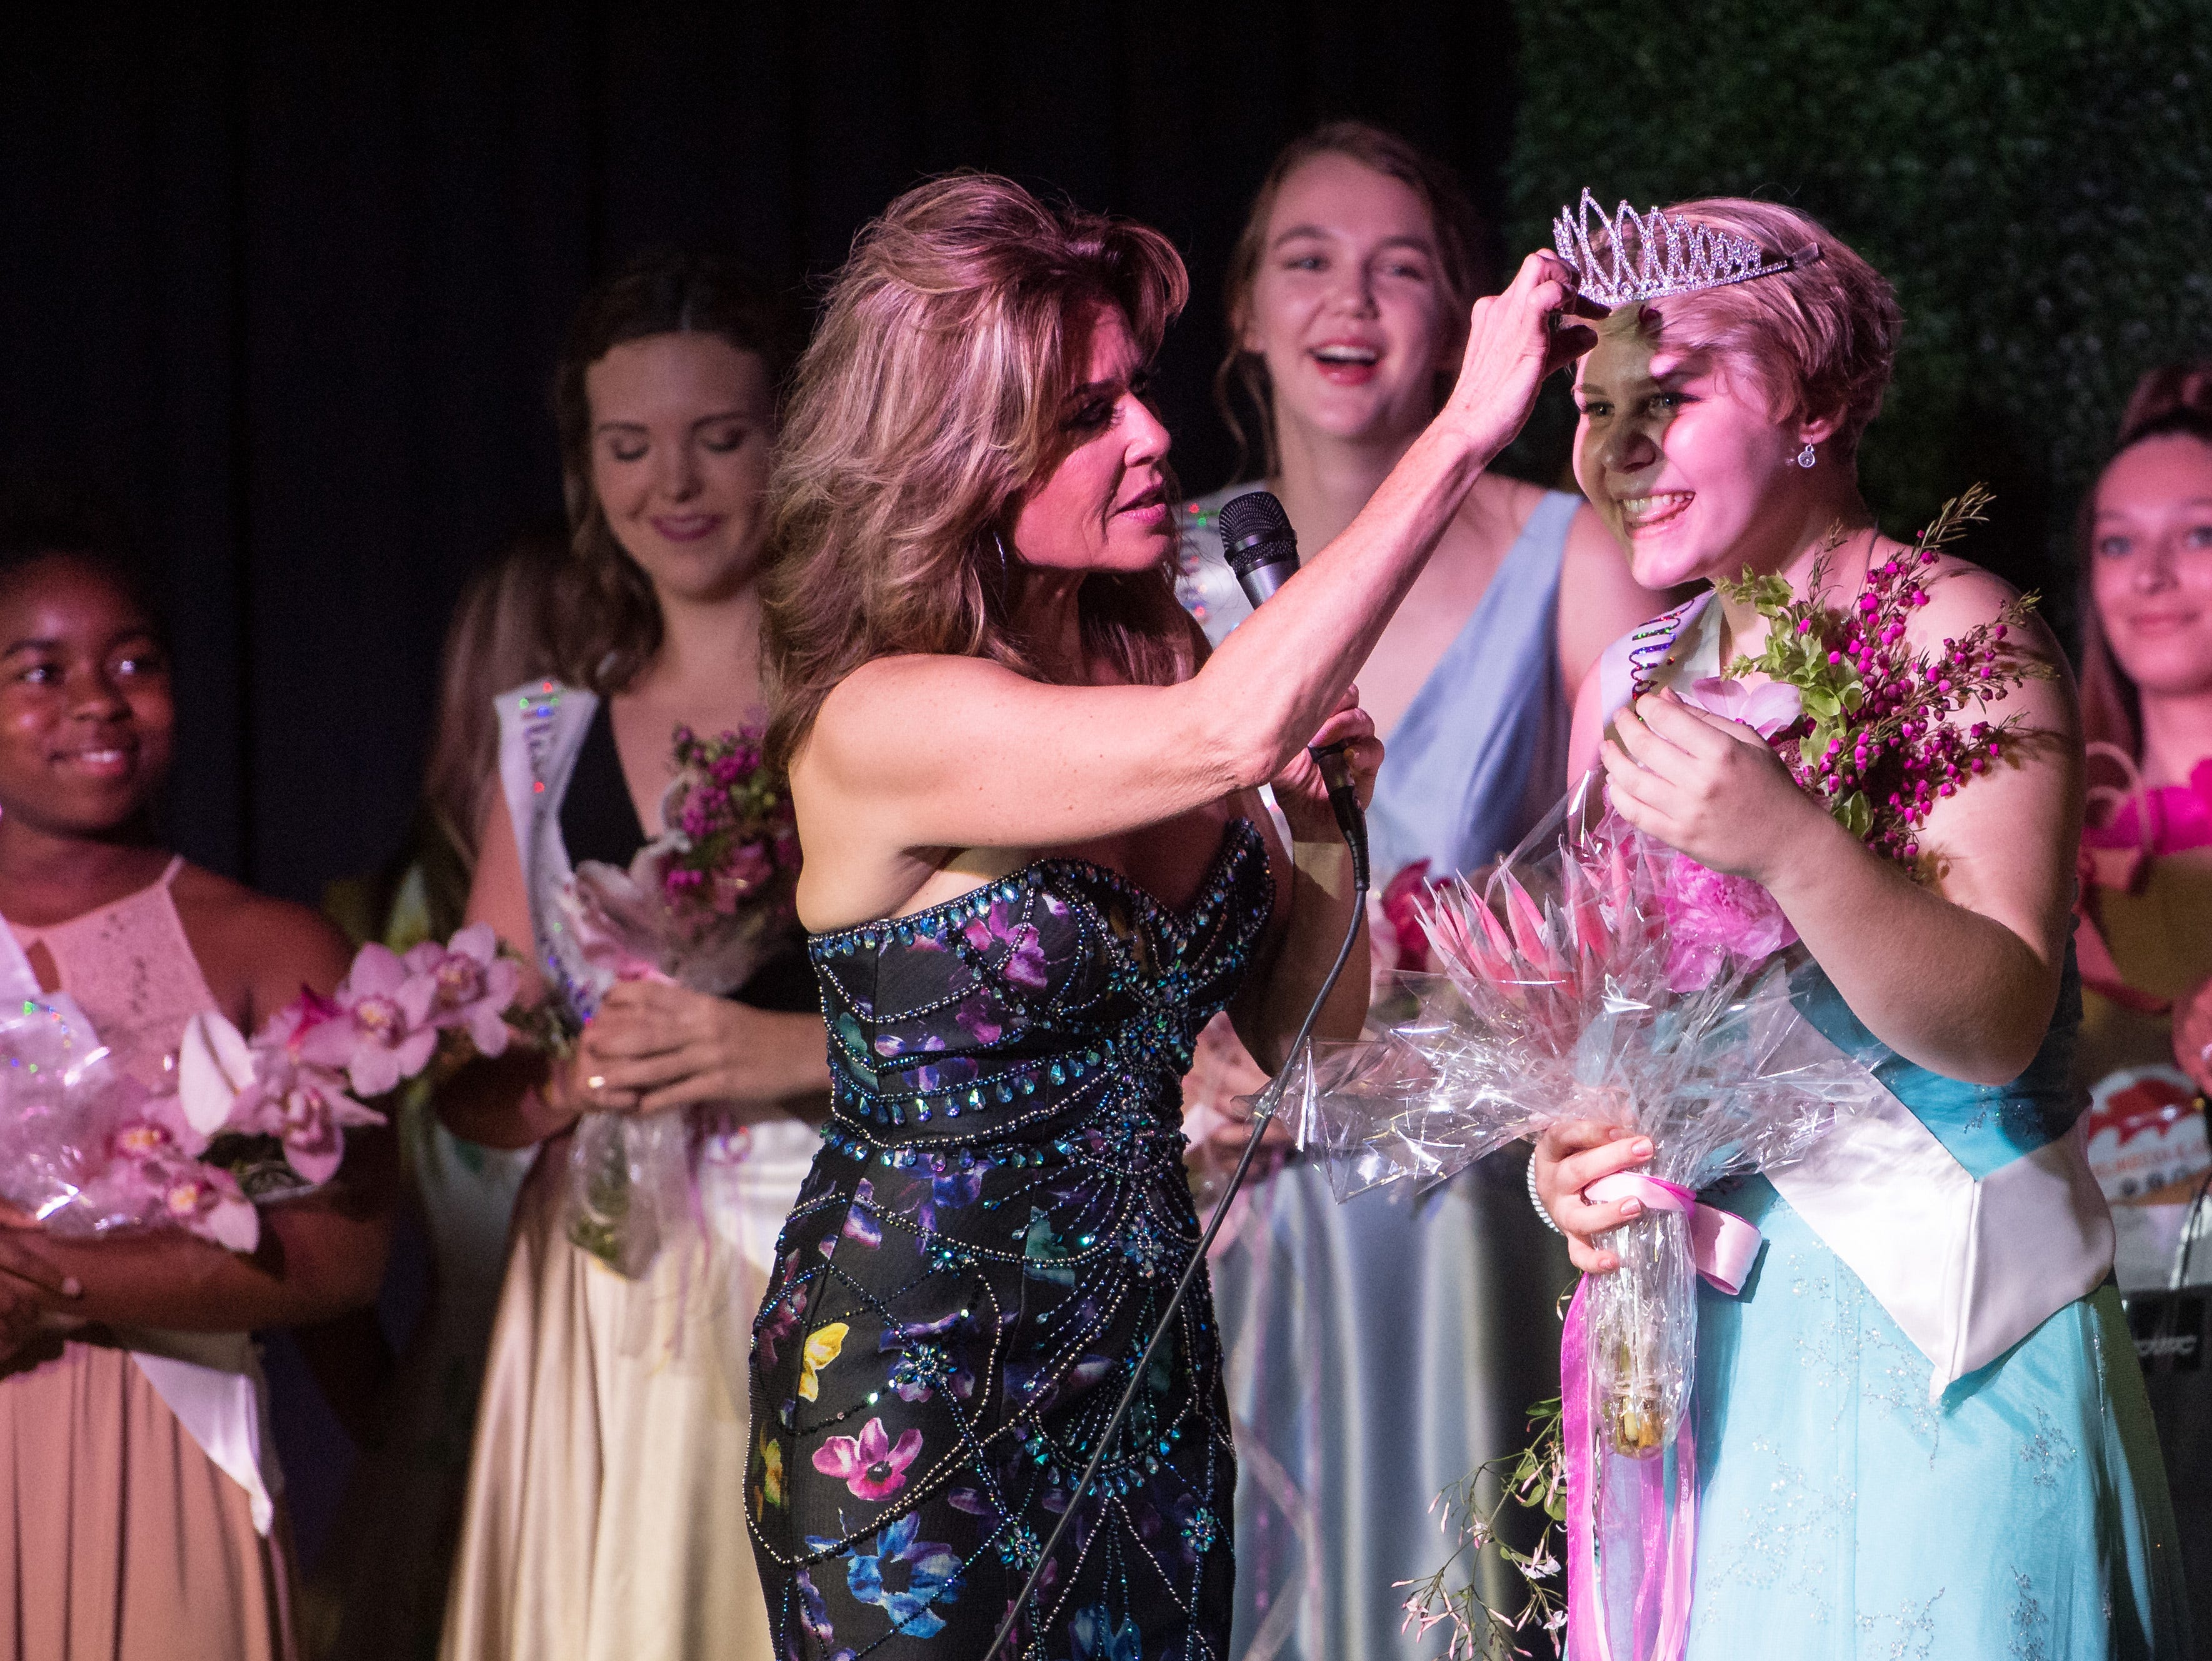 The 2019 Miss Hibiscus Pageant takes place Thursday, April 11, 2019, at the Heritage Center in Vero Beach. The pageant, which is a Main Street Vero Beach project, is part of the weekend long Hibiscus Festival in downtown Vero Beach.